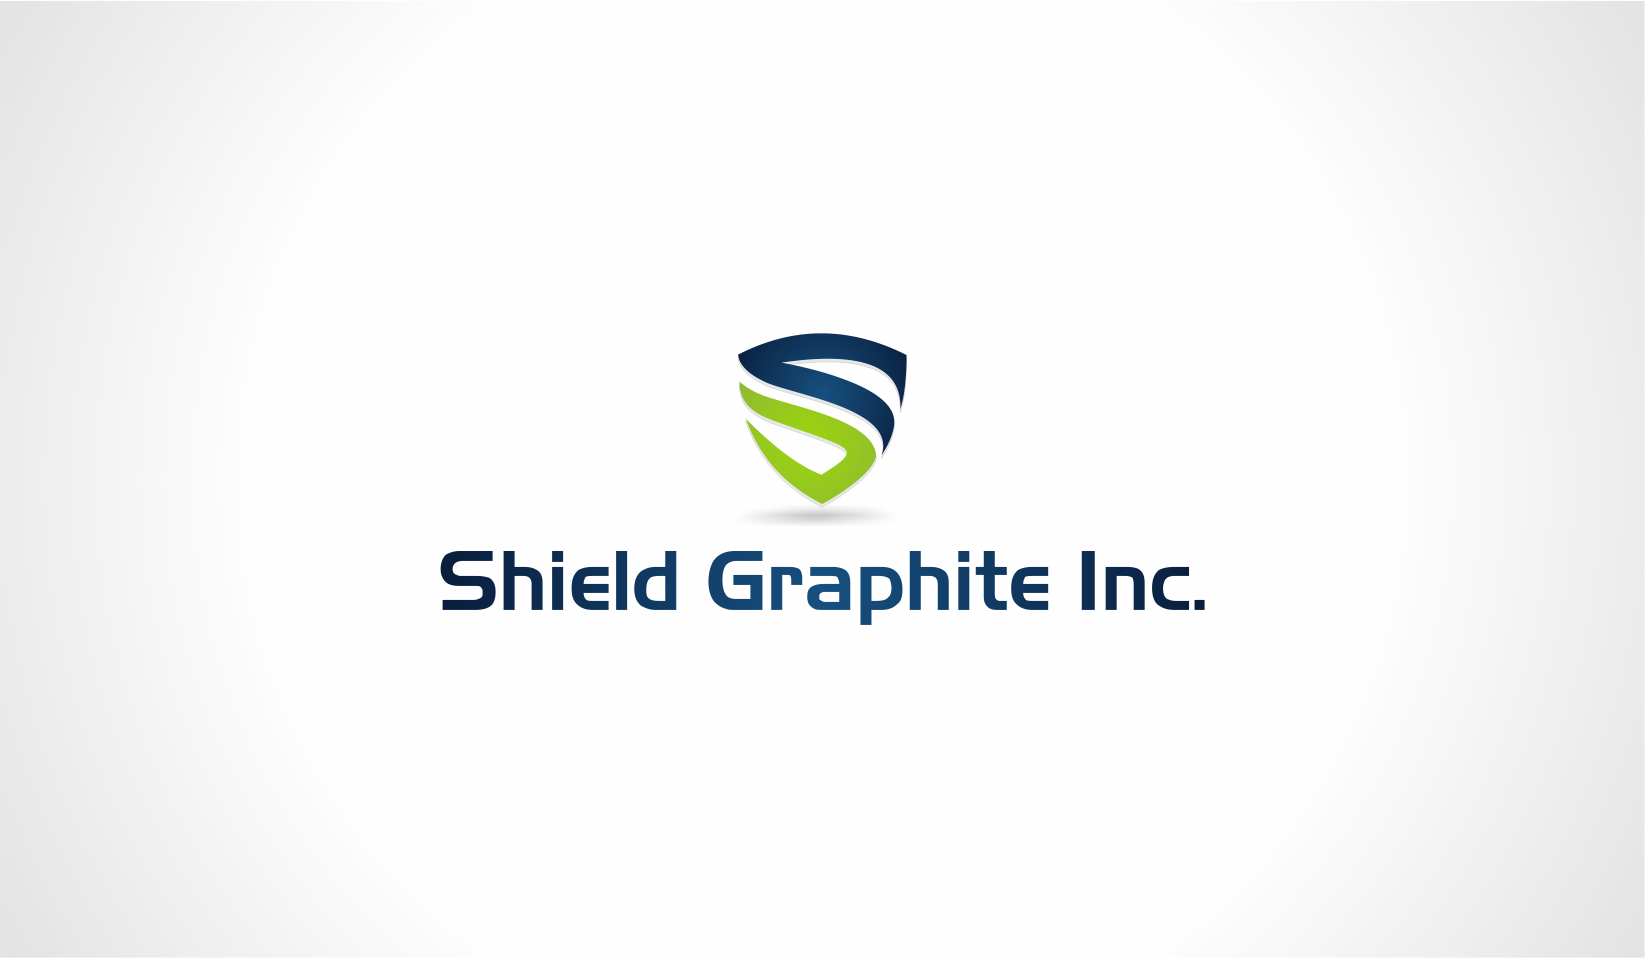 Logo Design by Muhammad Aslam - Entry No. 2 in the Logo Design Contest Imaginative Logo Design for Shield Graphite Inc..